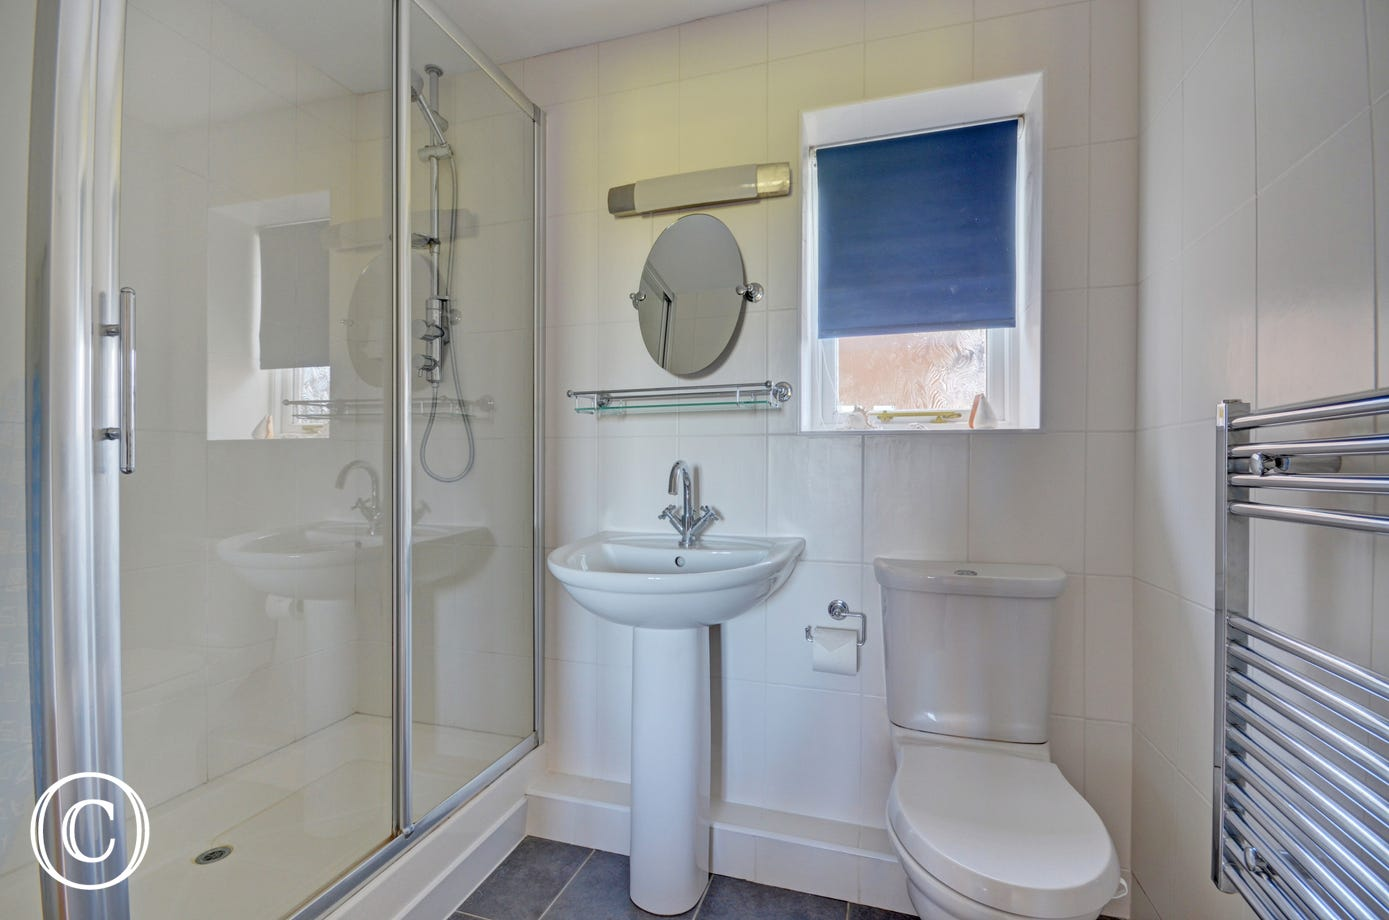 A large enclosed shower cubicle.